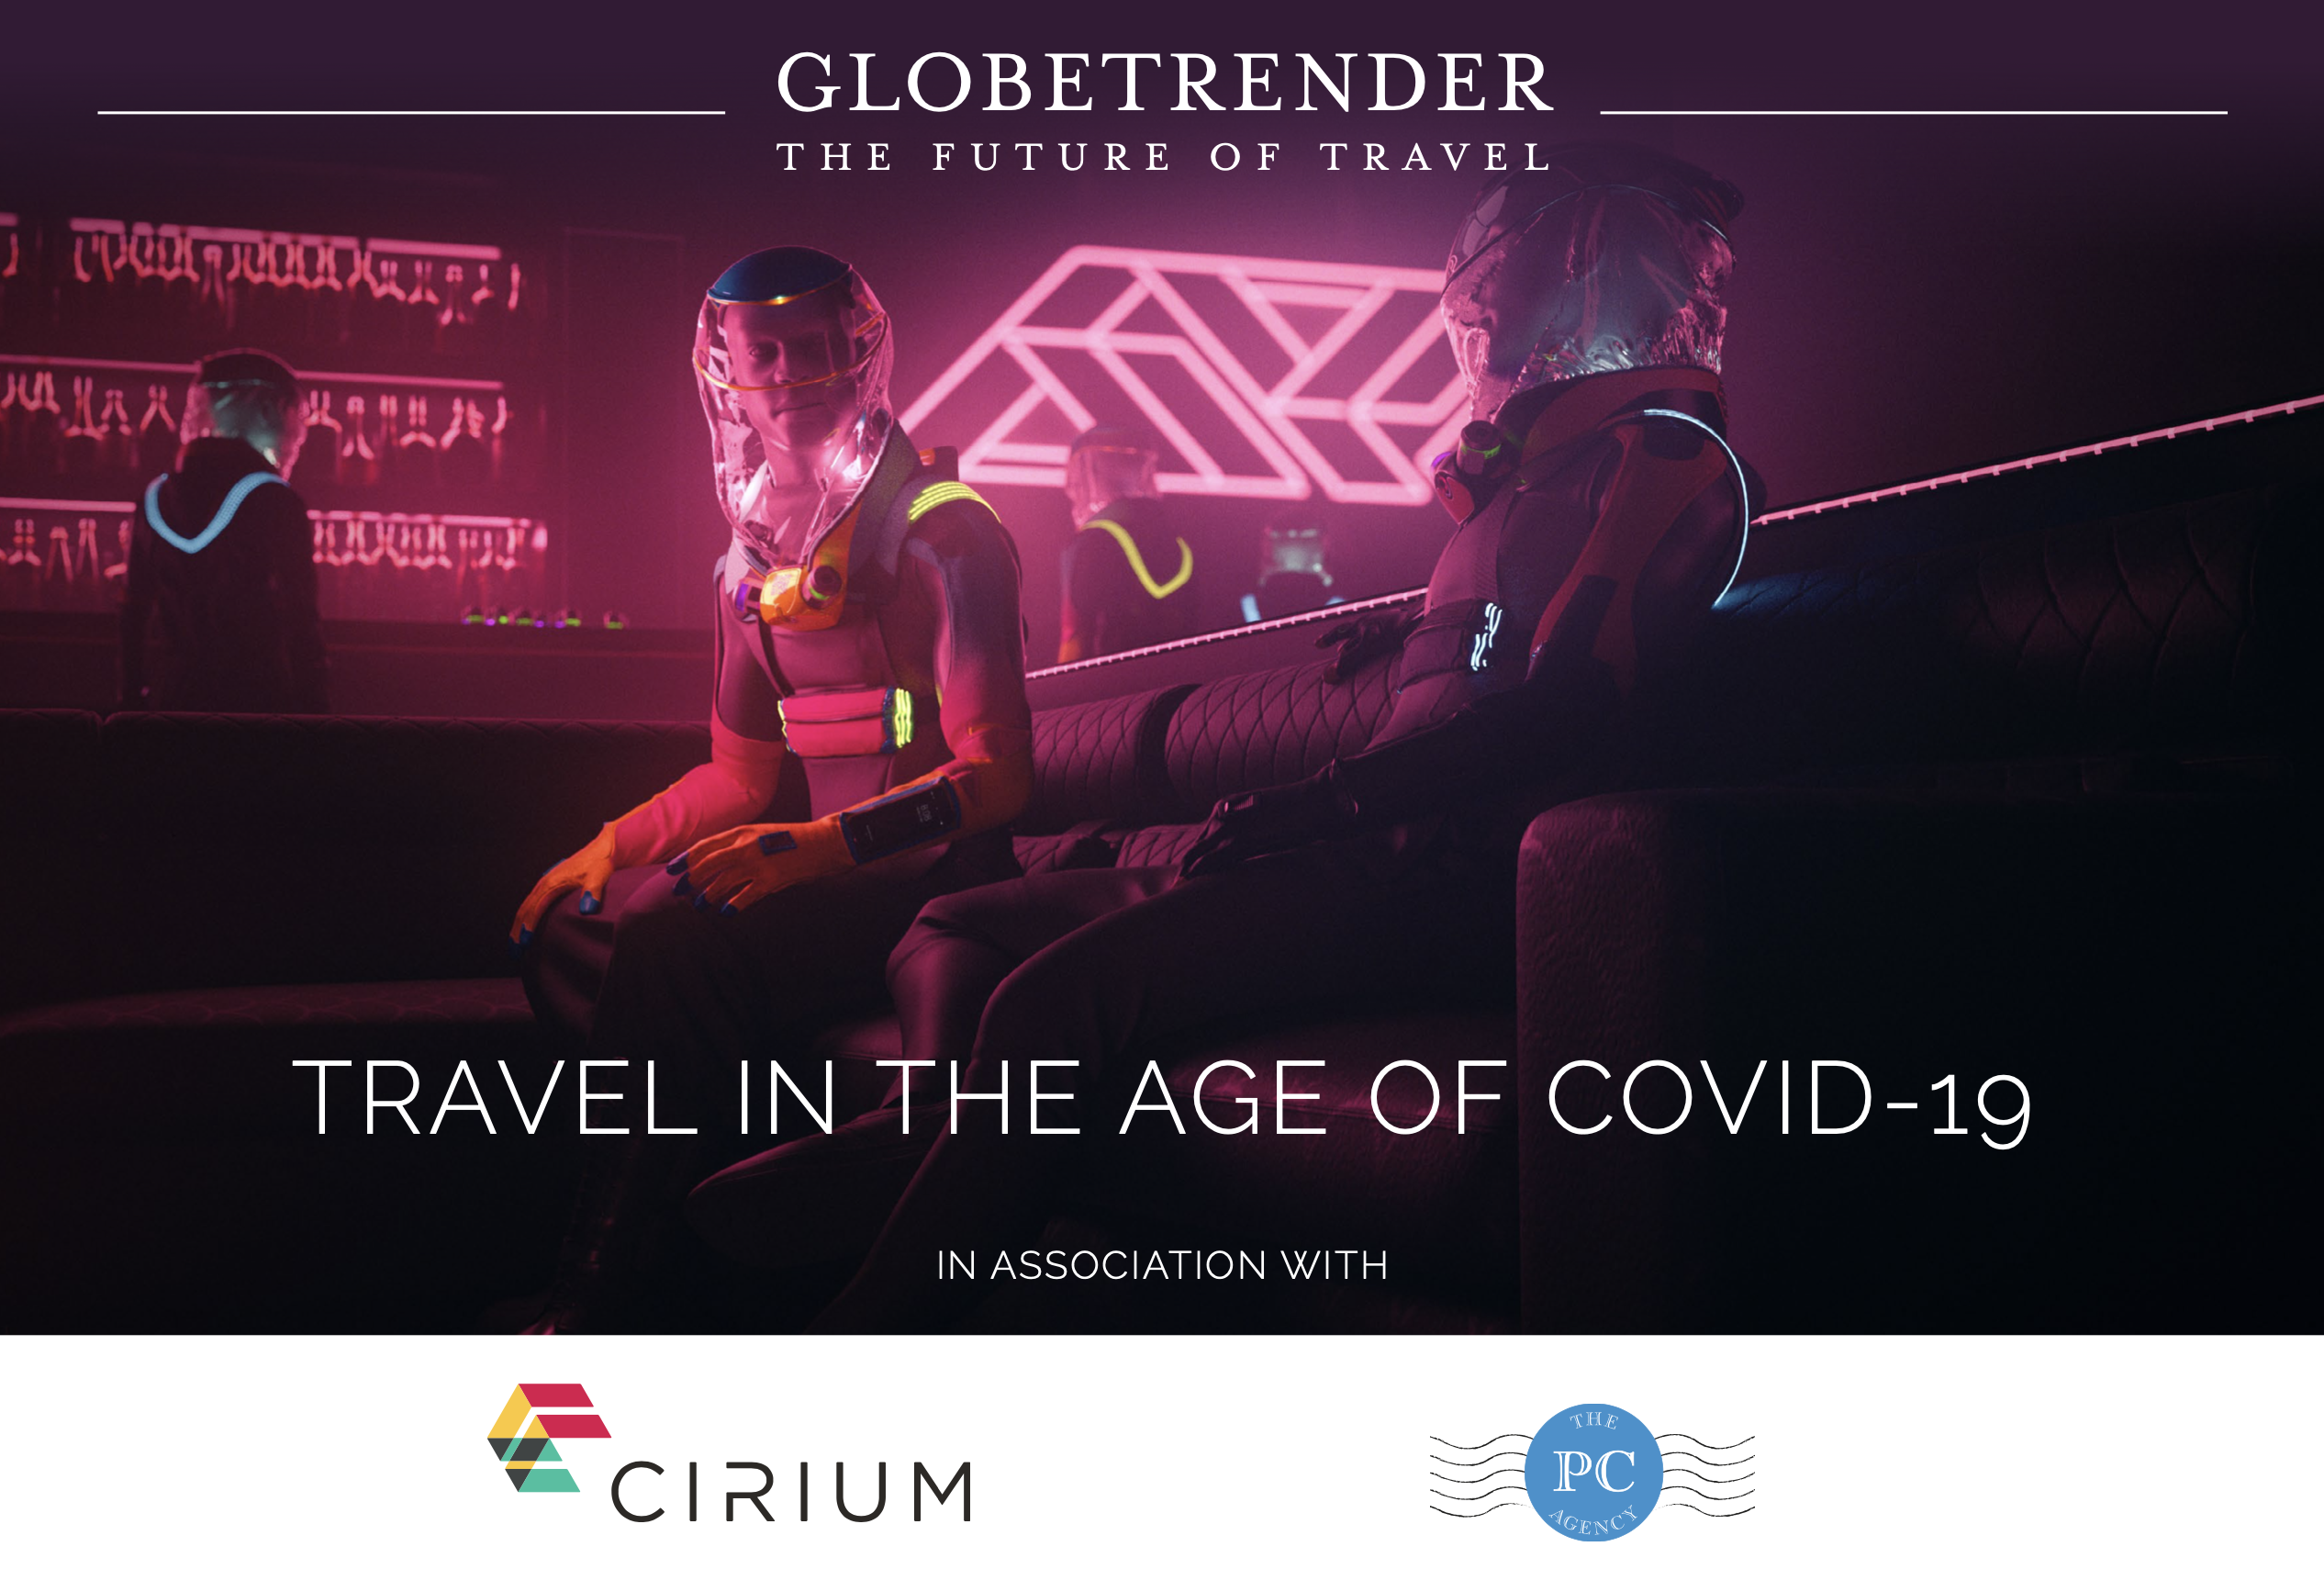 Travel in the Age of Covid-19